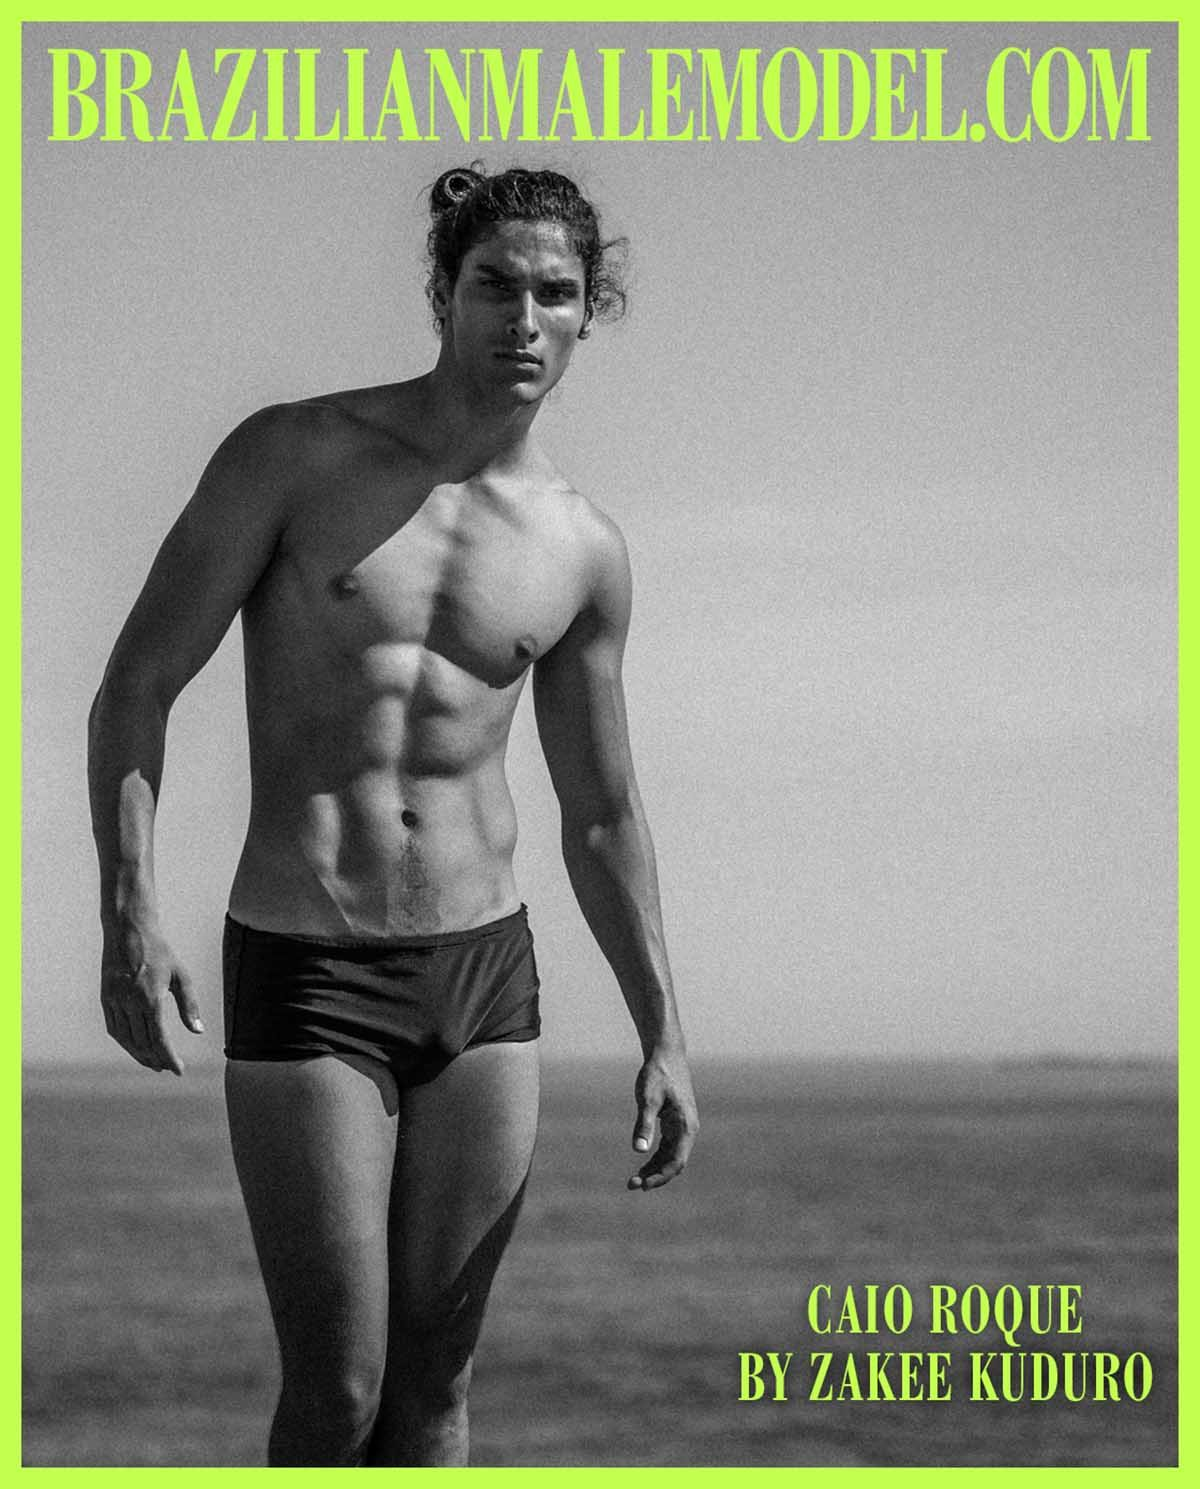 Caio Roque by Zakee Kuduro